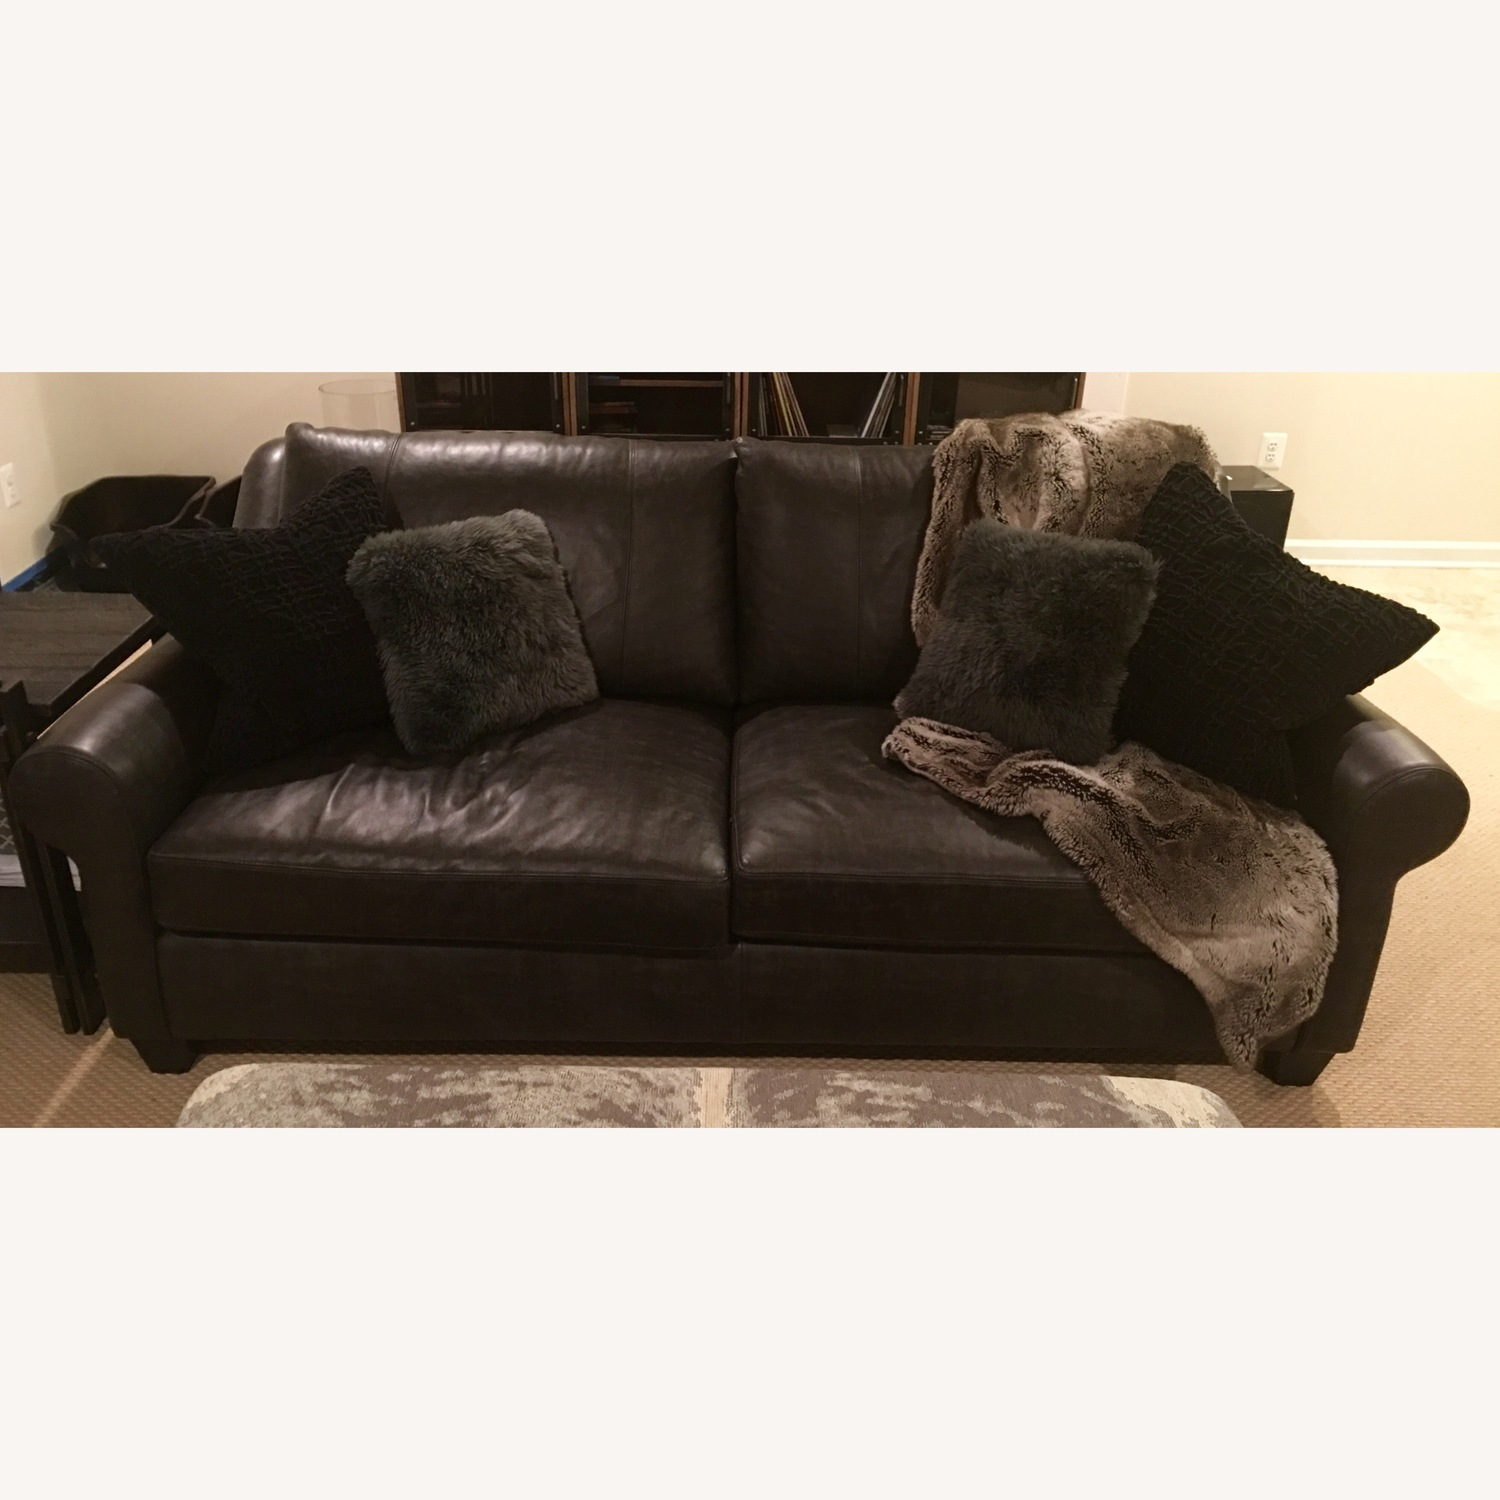 Arhaus Rockway Leather Sofa - image-6